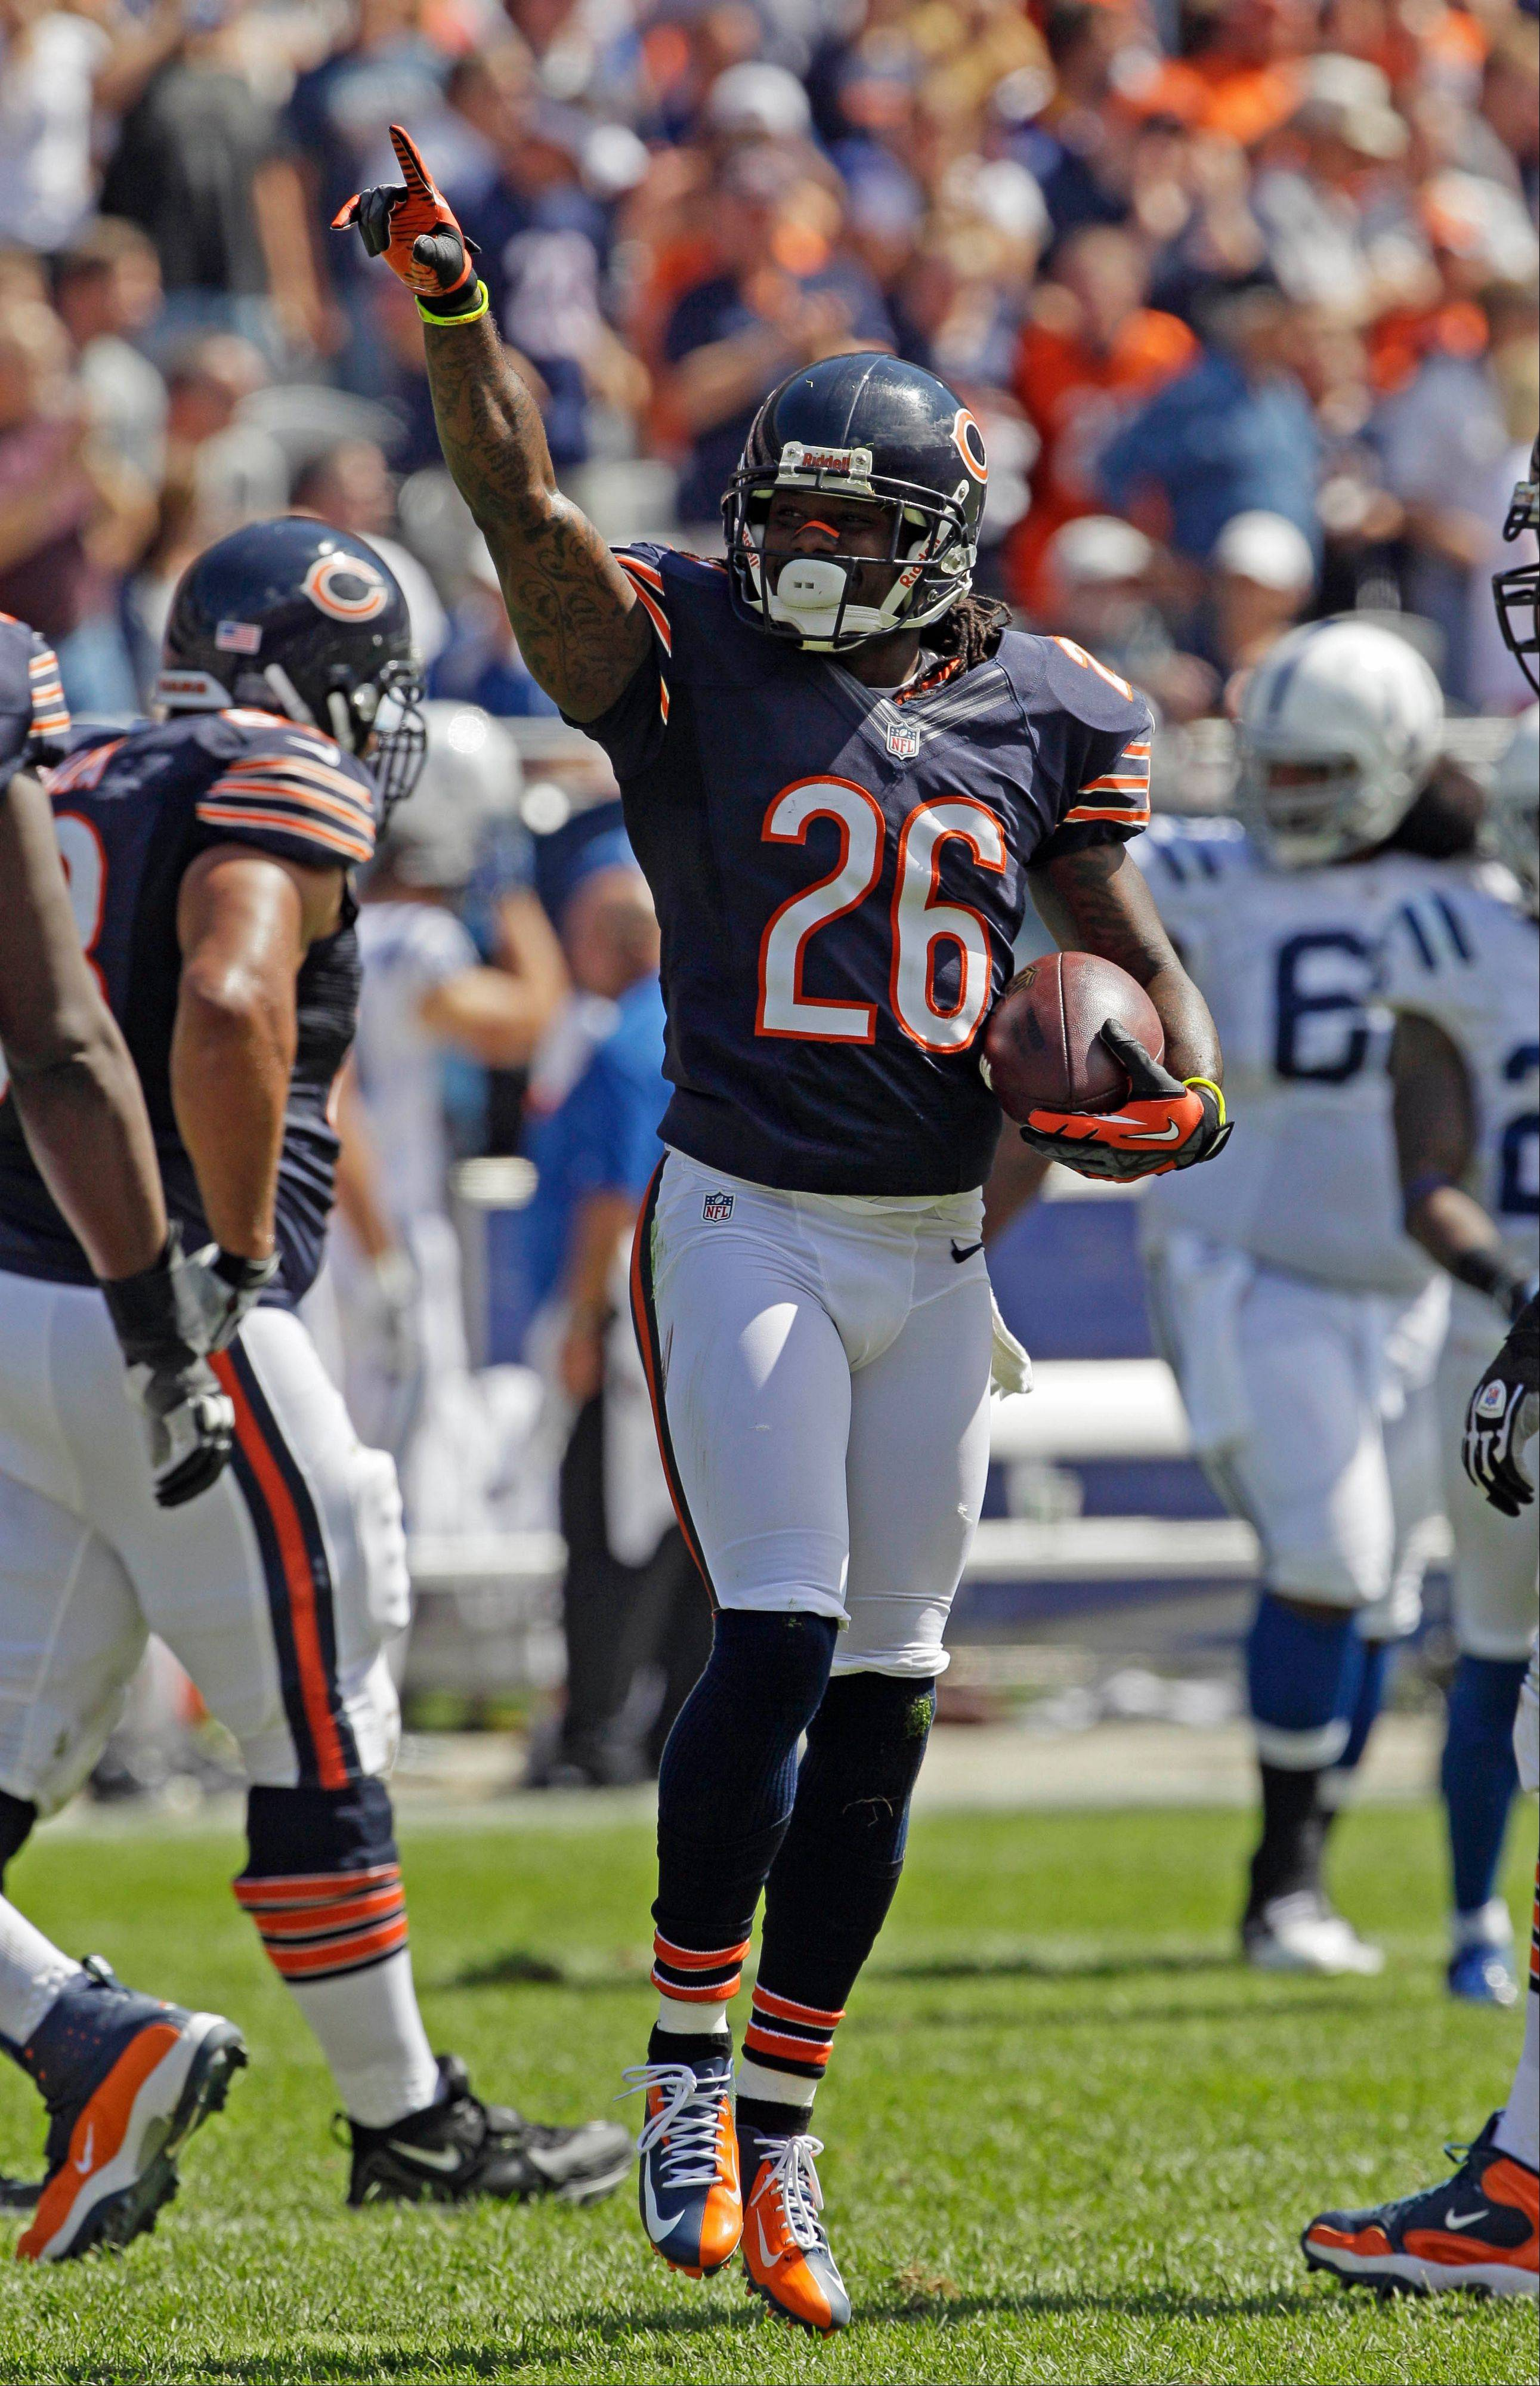 Tim Jennings celebrates after intercepting a pass against the Colts.